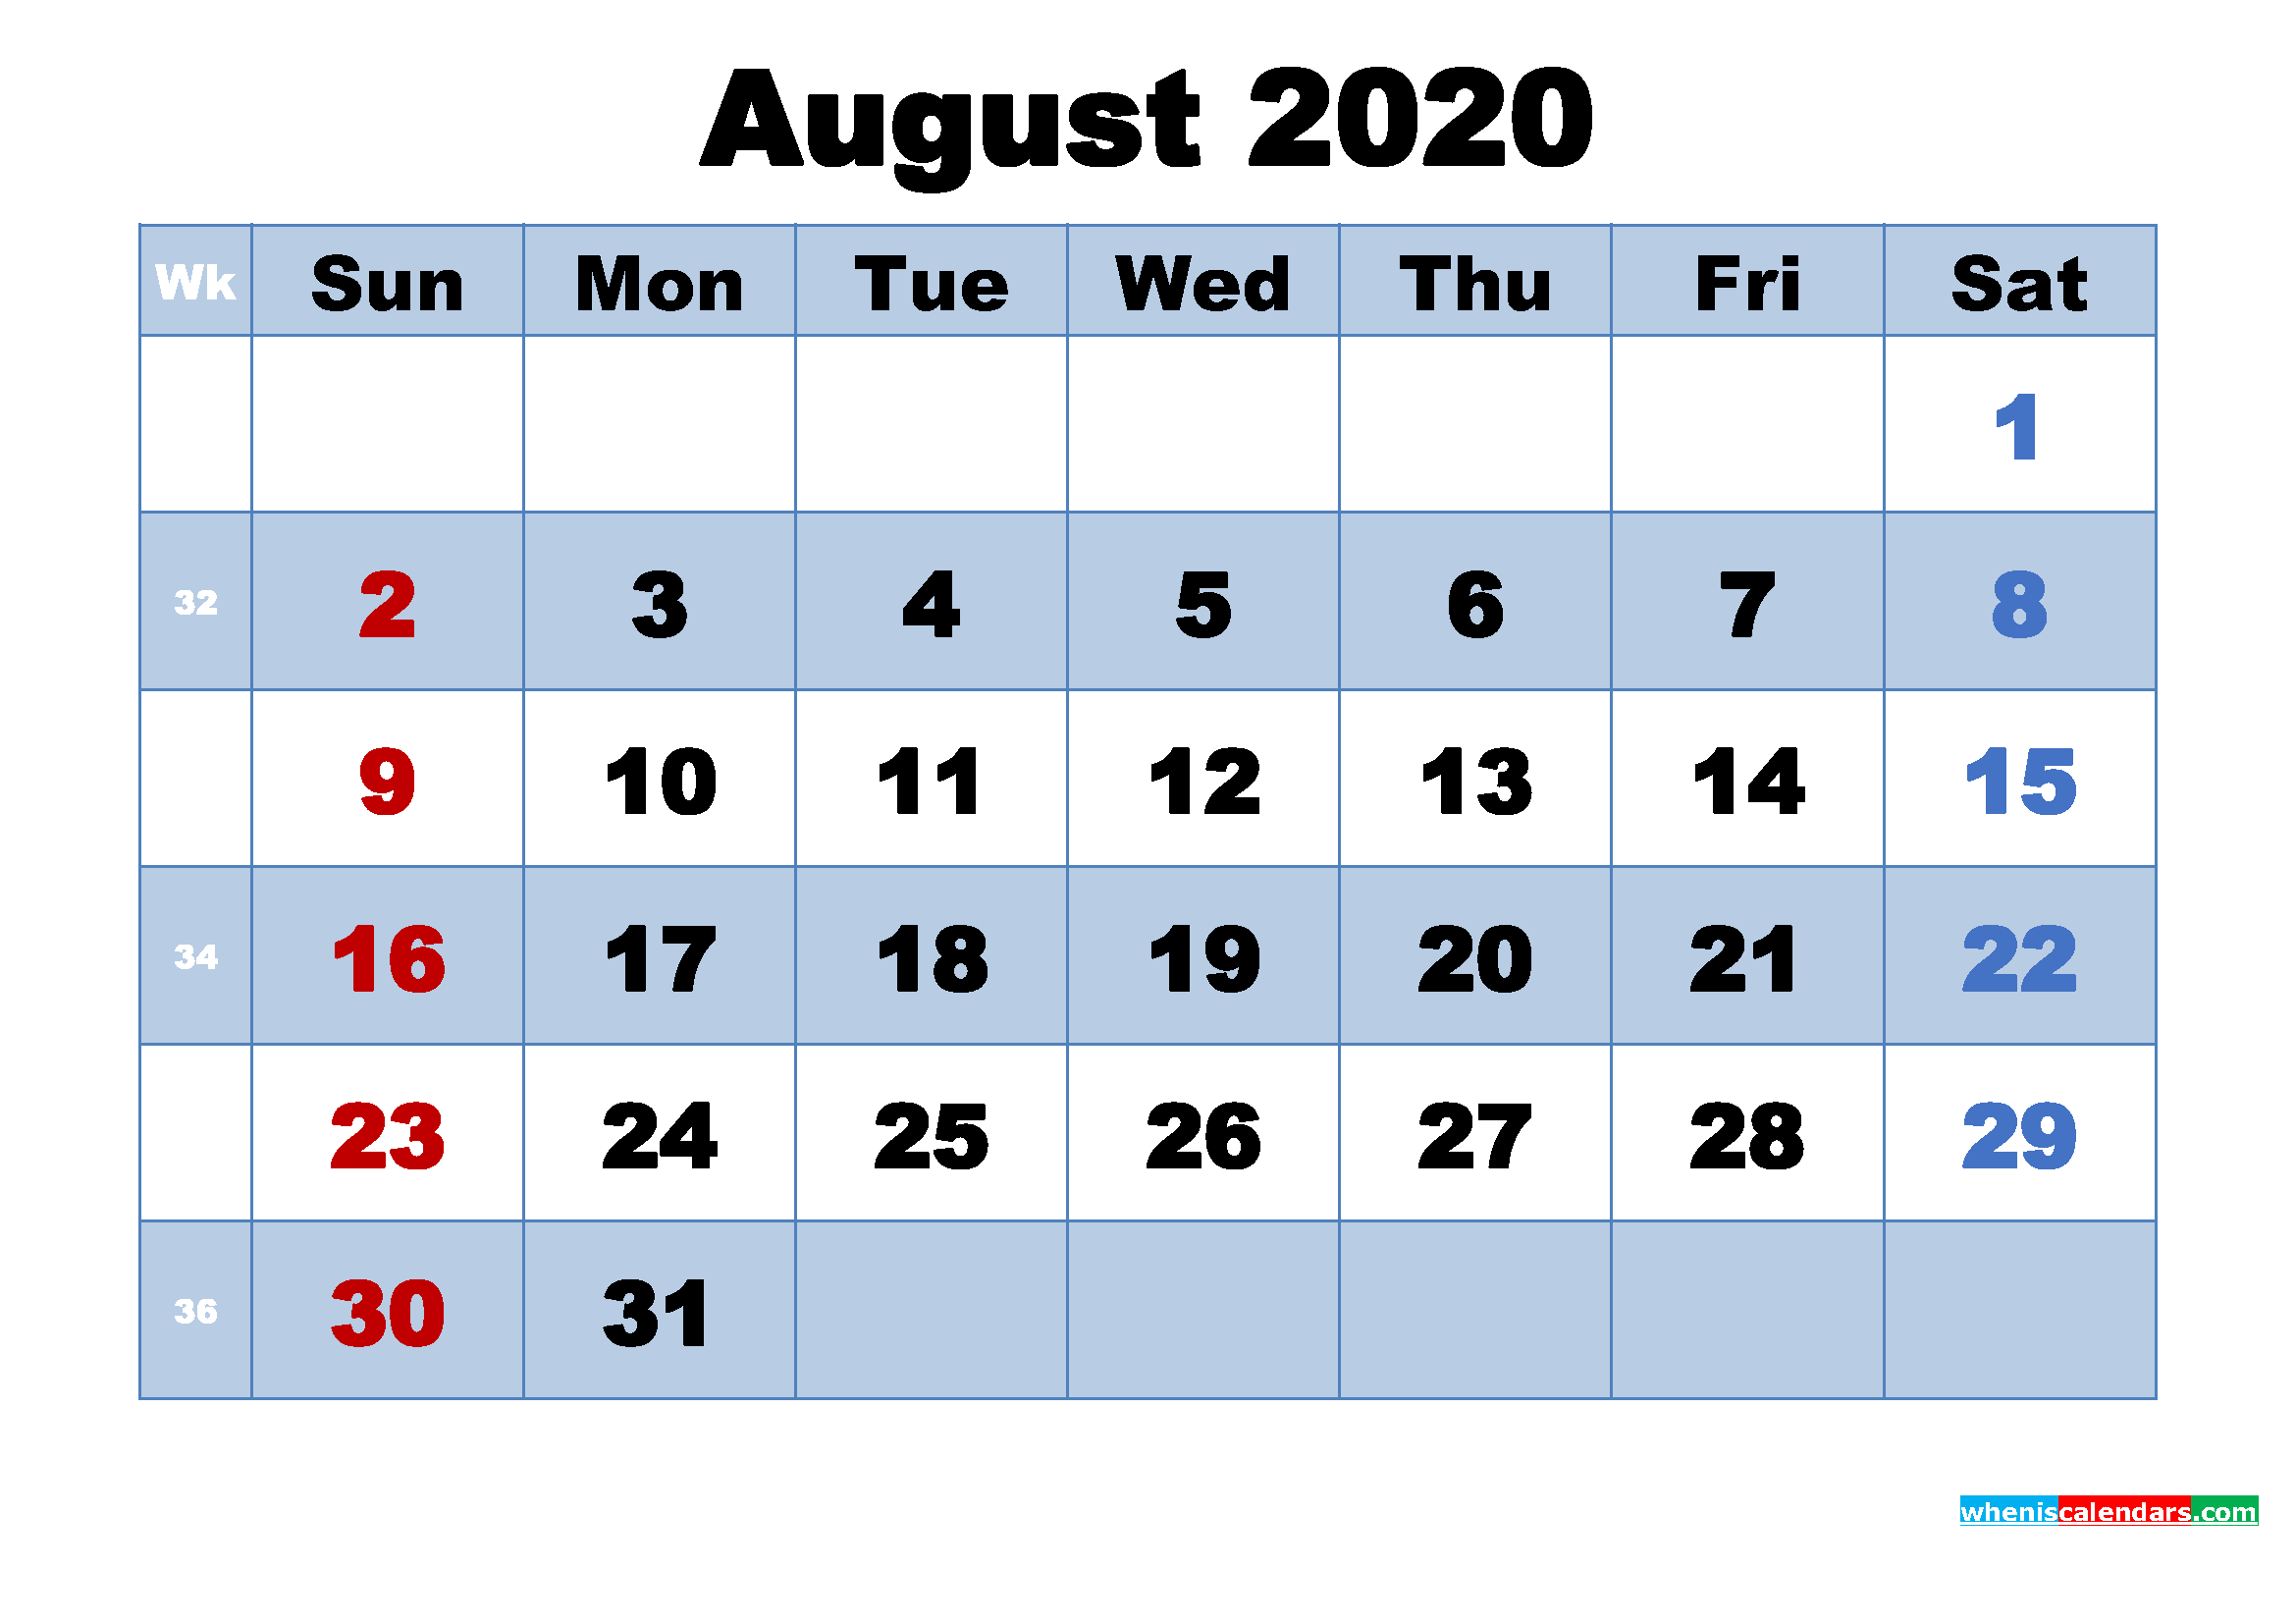 August 2020 Calendar with Holidays Printable